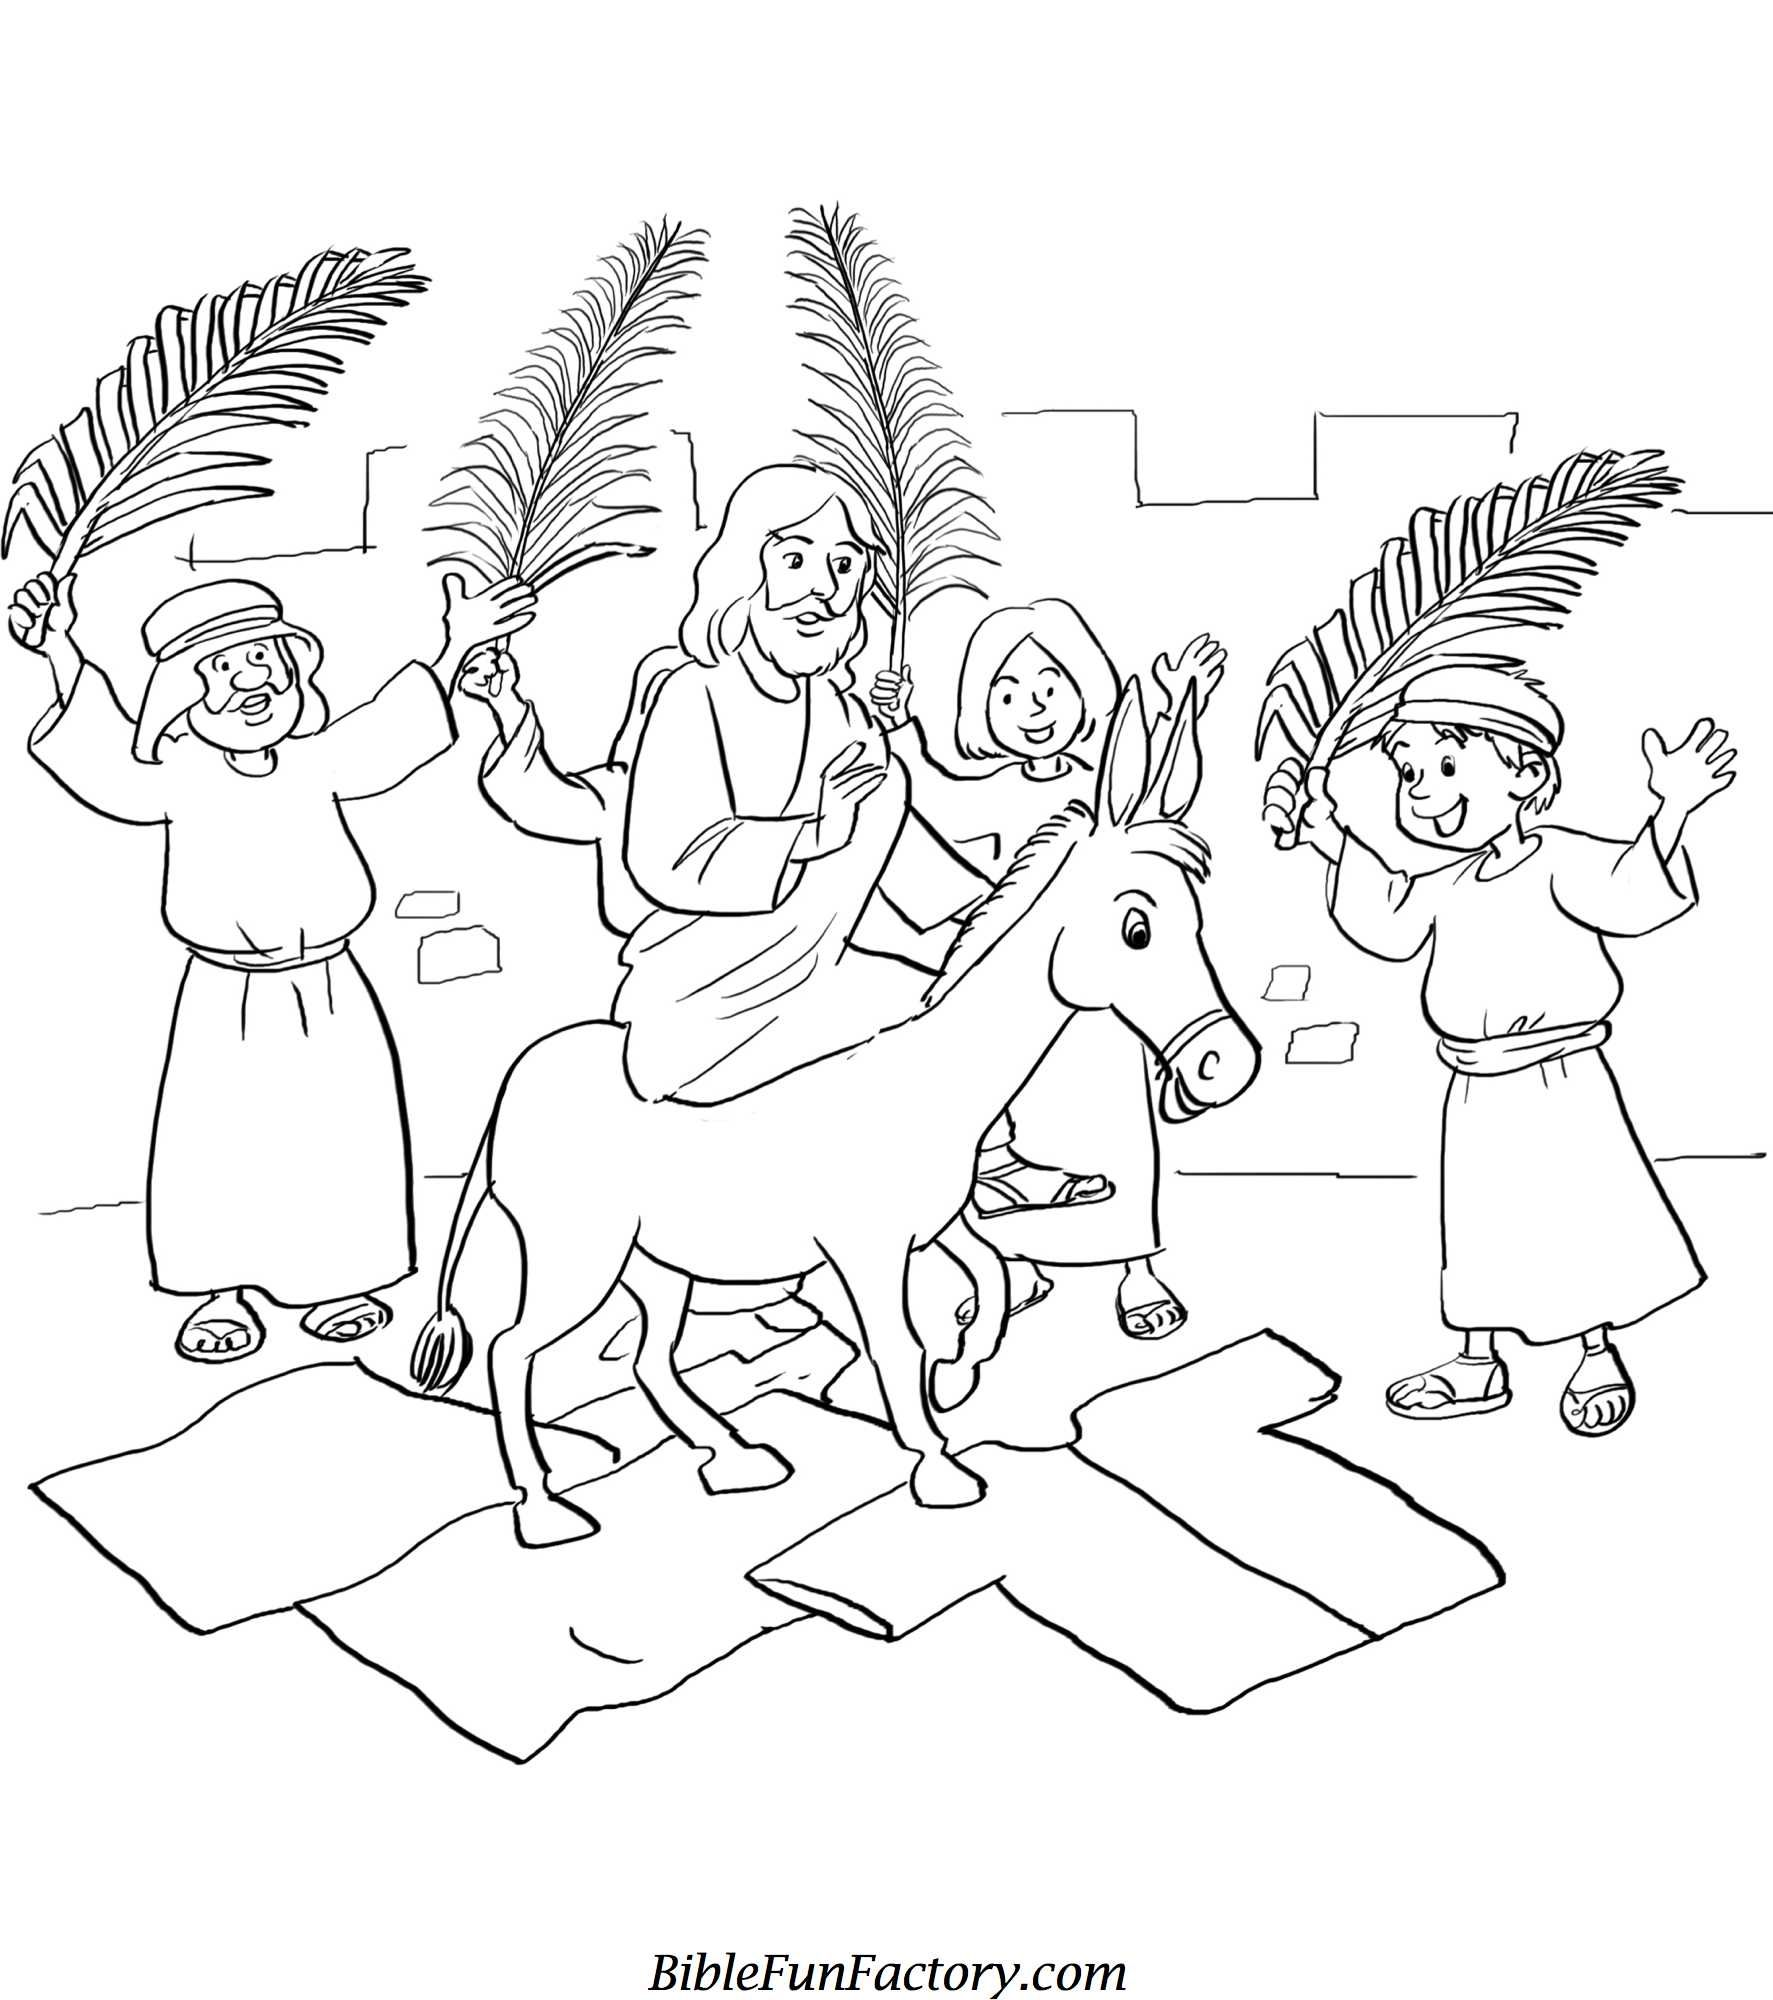 free sunday school coloring pages easter sunday school coloring pages at getdrawings free pages school free sunday coloring